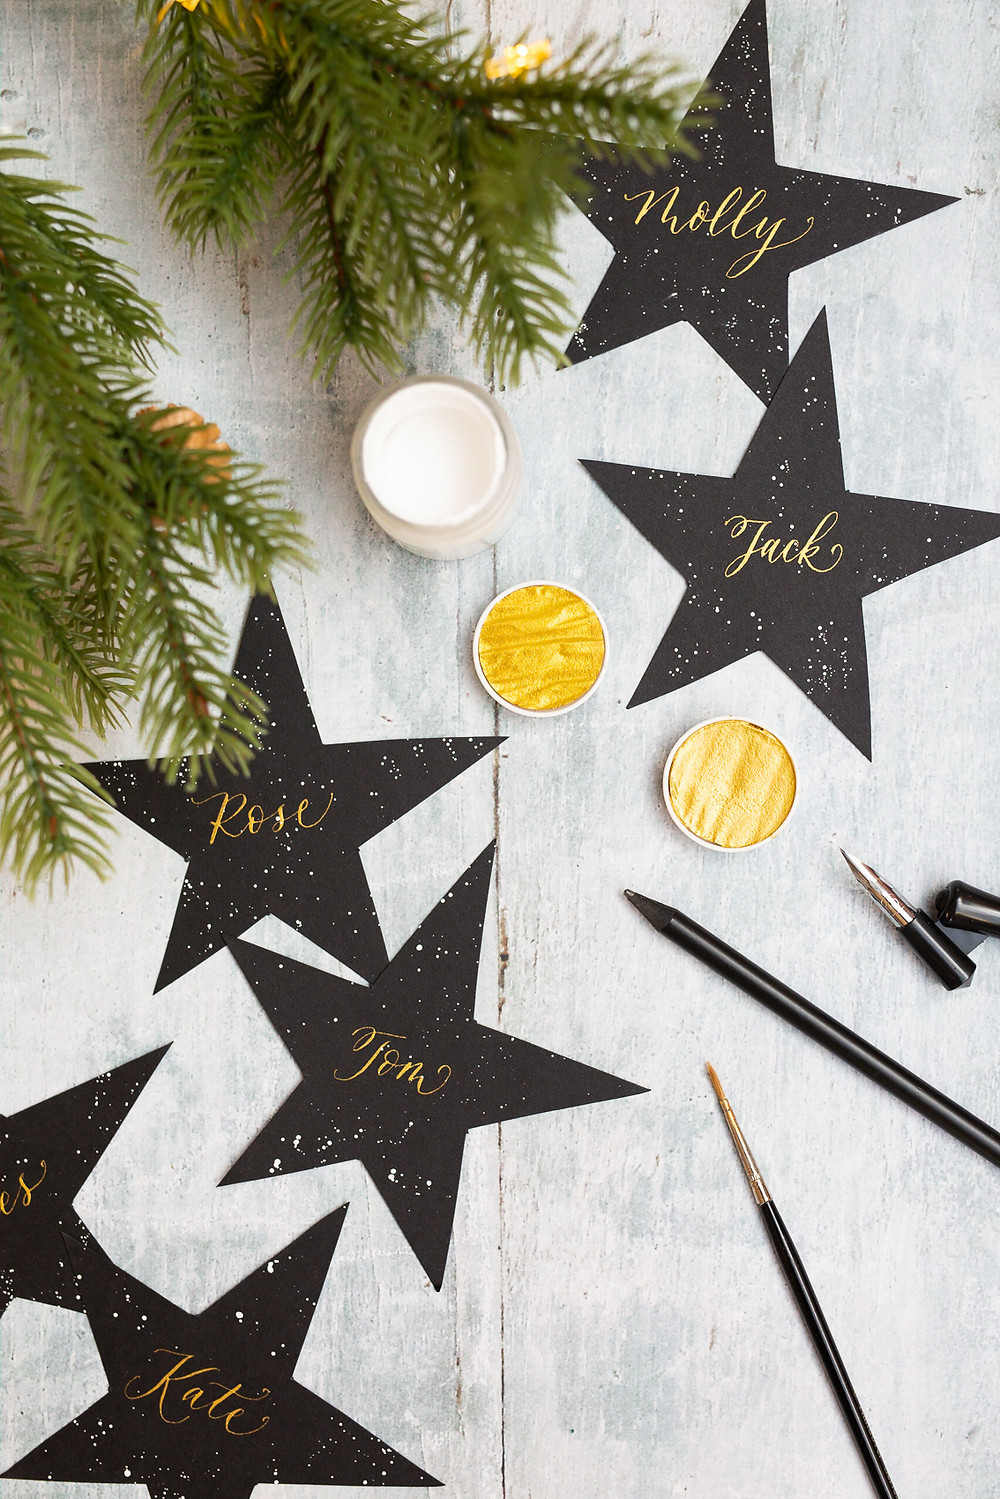 Christmas Calligraphy Details | Brand Photography for Judy Broad Calligraphy By Fresh Leaf Creative | Calligraphy DIY Dinner Settings